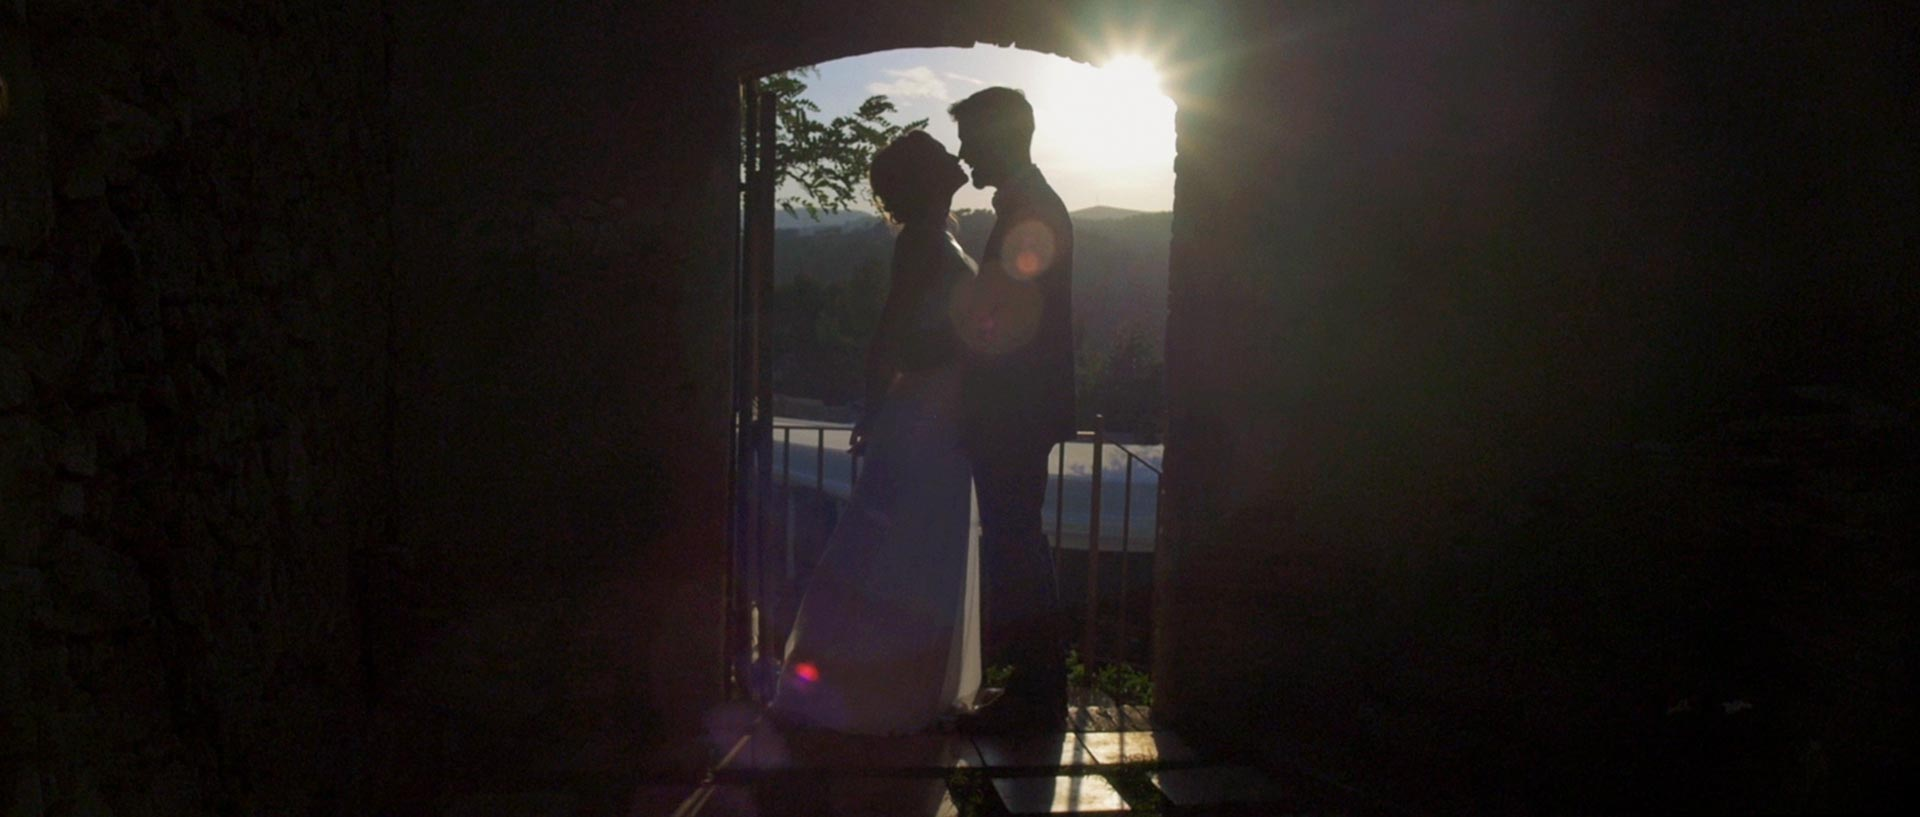 destination wedding cinematography case Felix sitges barcelona Spain